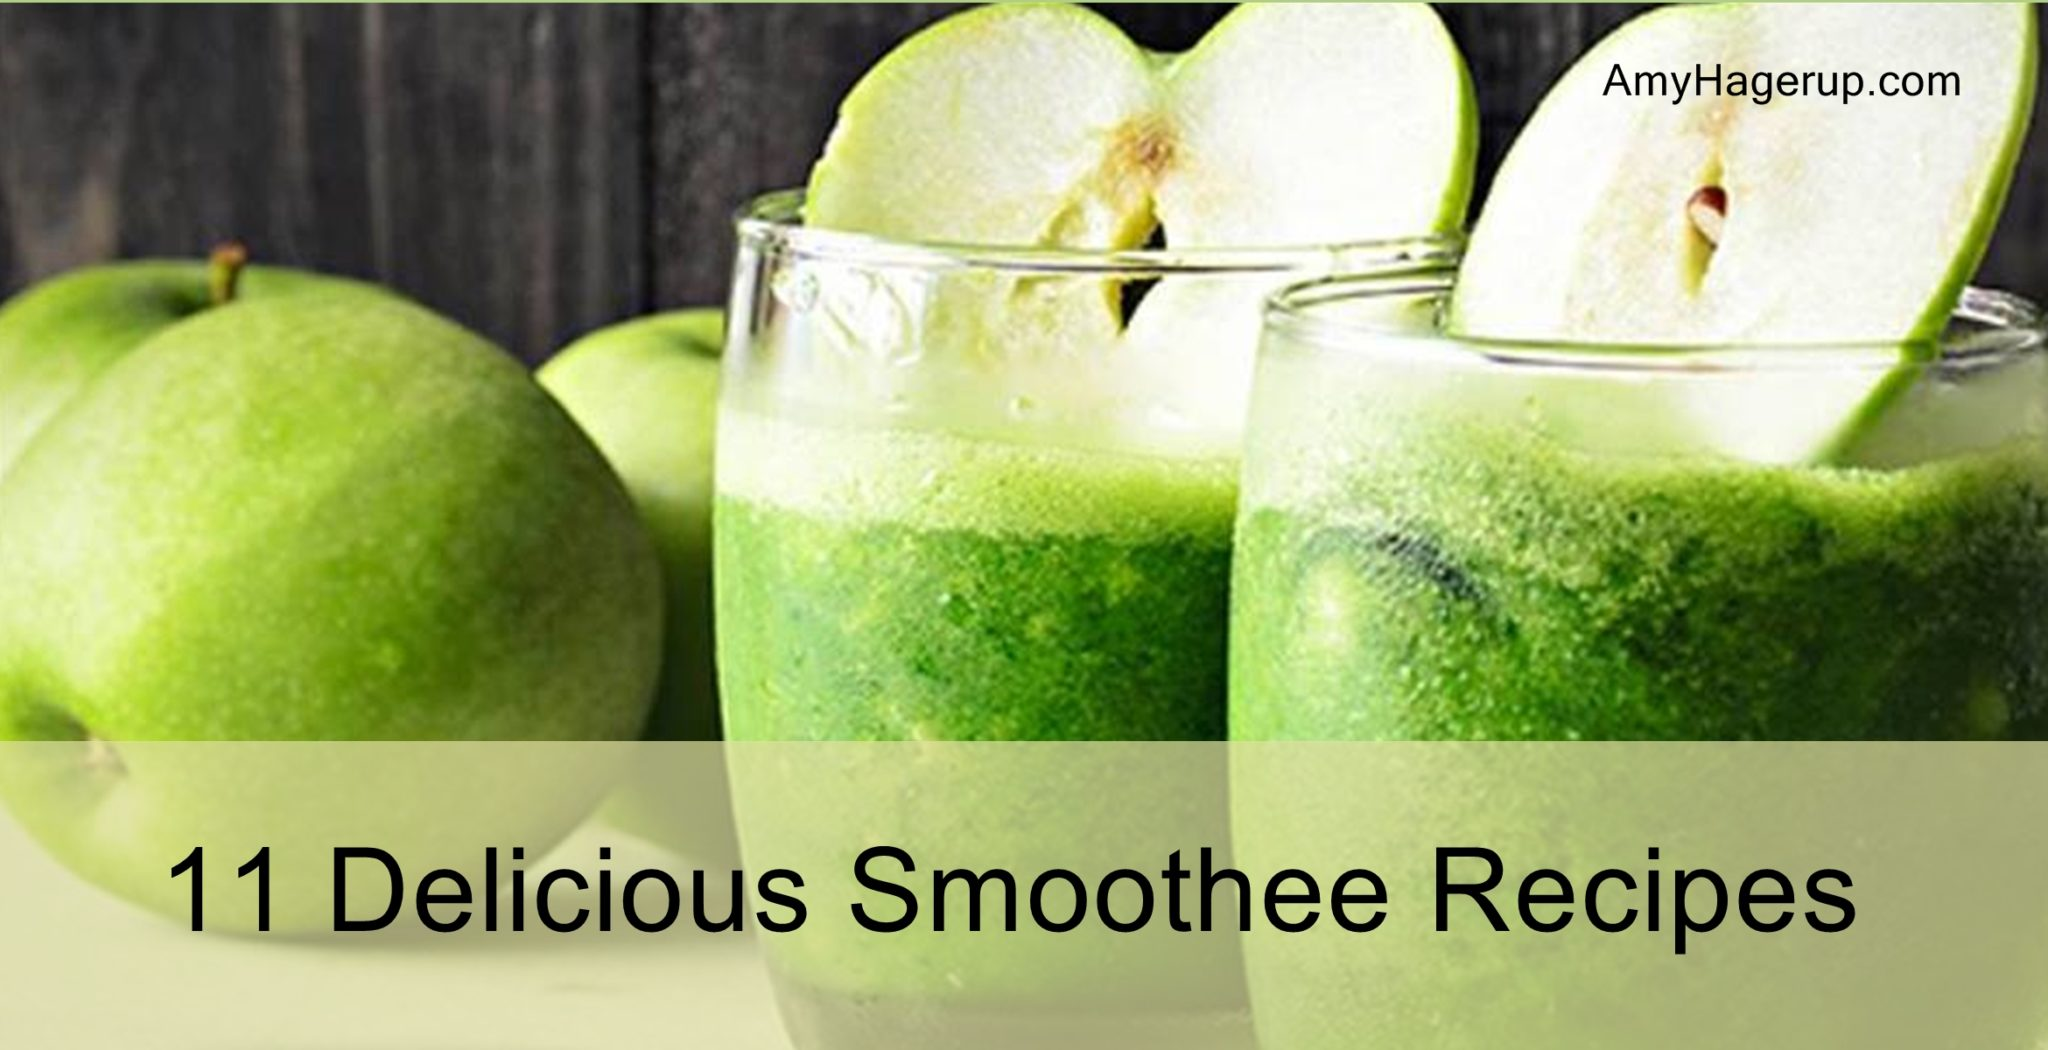 Check out these yummy 11 smoothee recipes